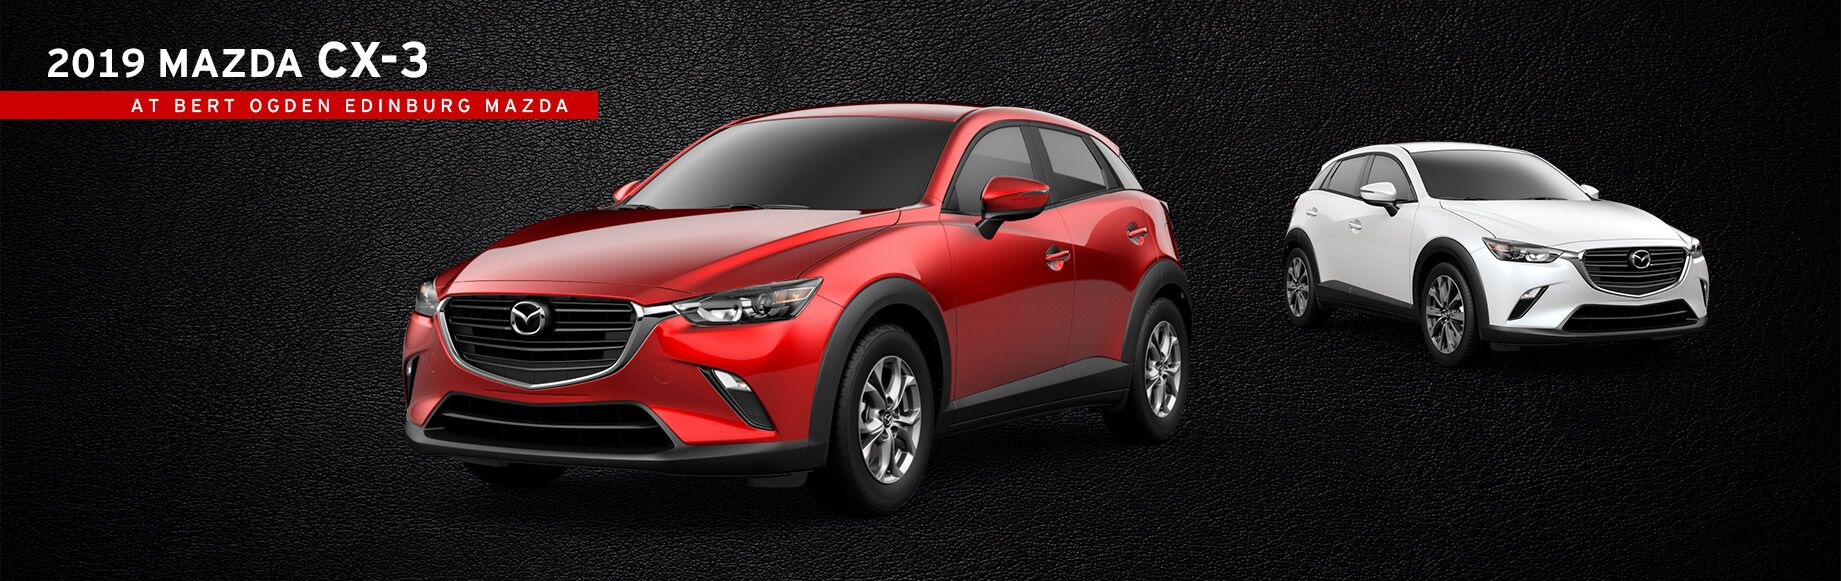 The 2019 Mazda CX-3 at Bert Ogden Edinburg Mazda